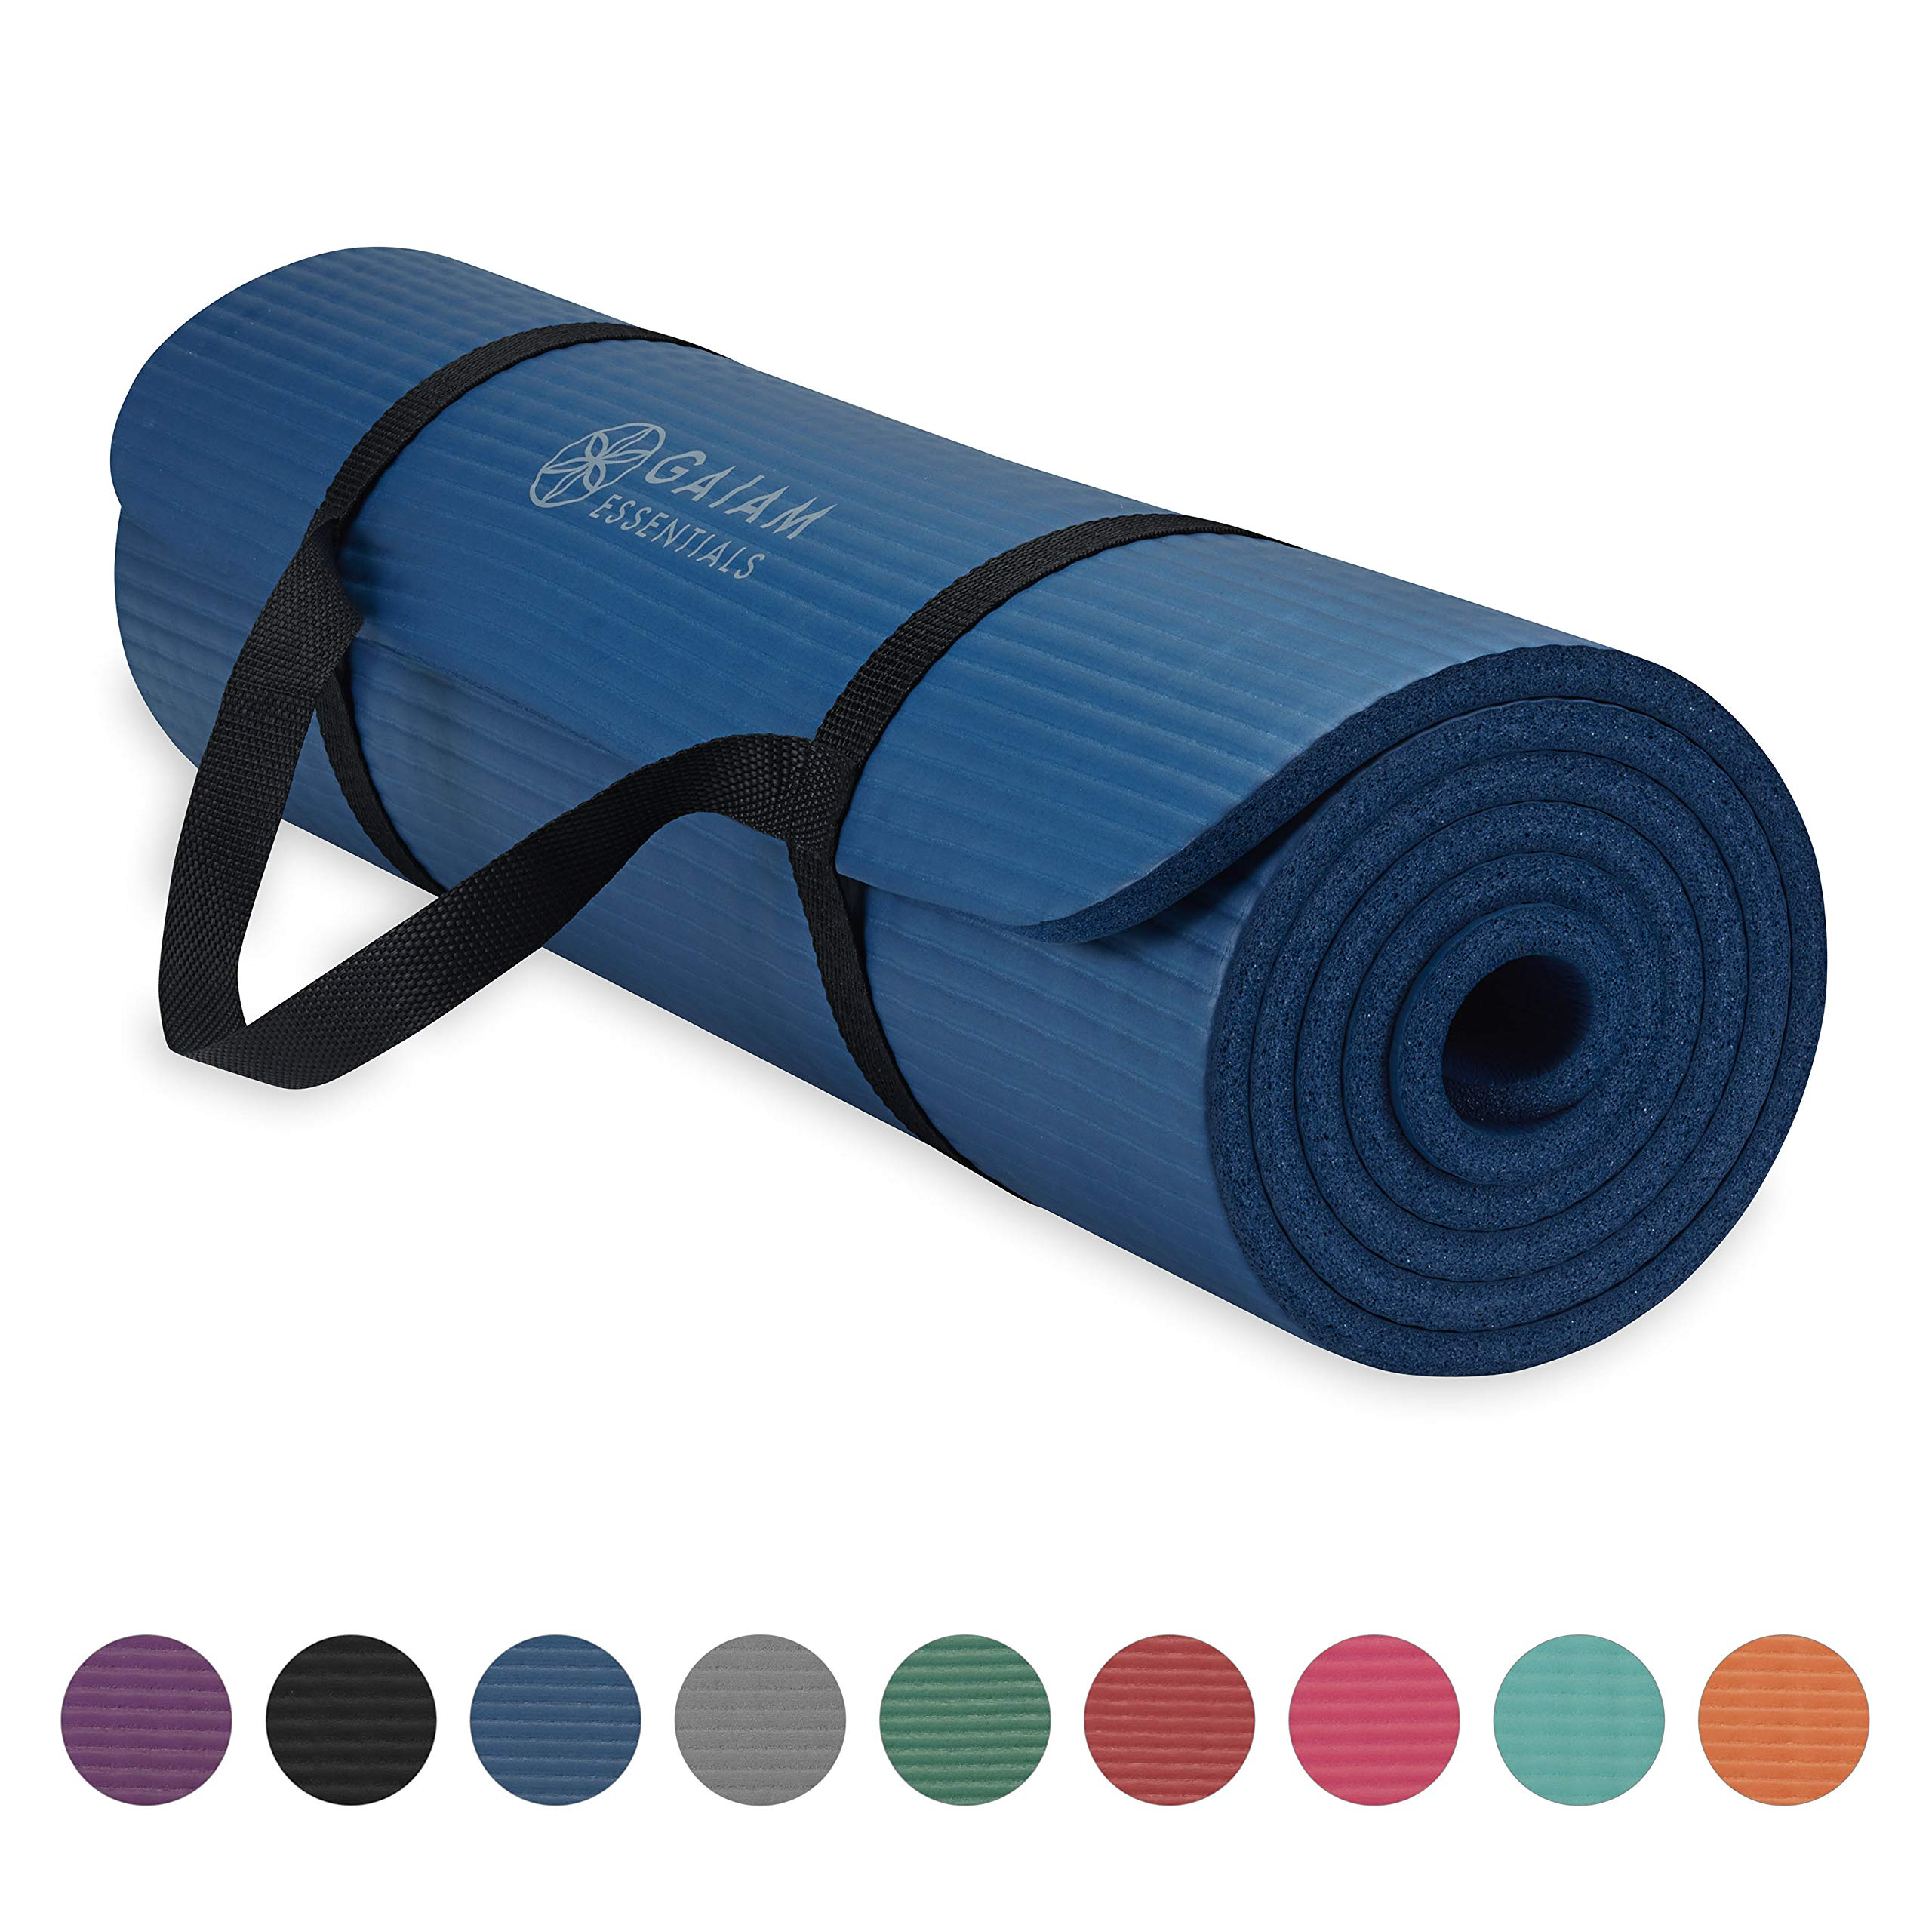 Gaiam Essentials Thick Yoga Mat Fitness & Exercise Mat with Easy-Cinch Yoga Mat Carrier Strap, Navy, 72''L x 24''W x 2/5 Inch Thick